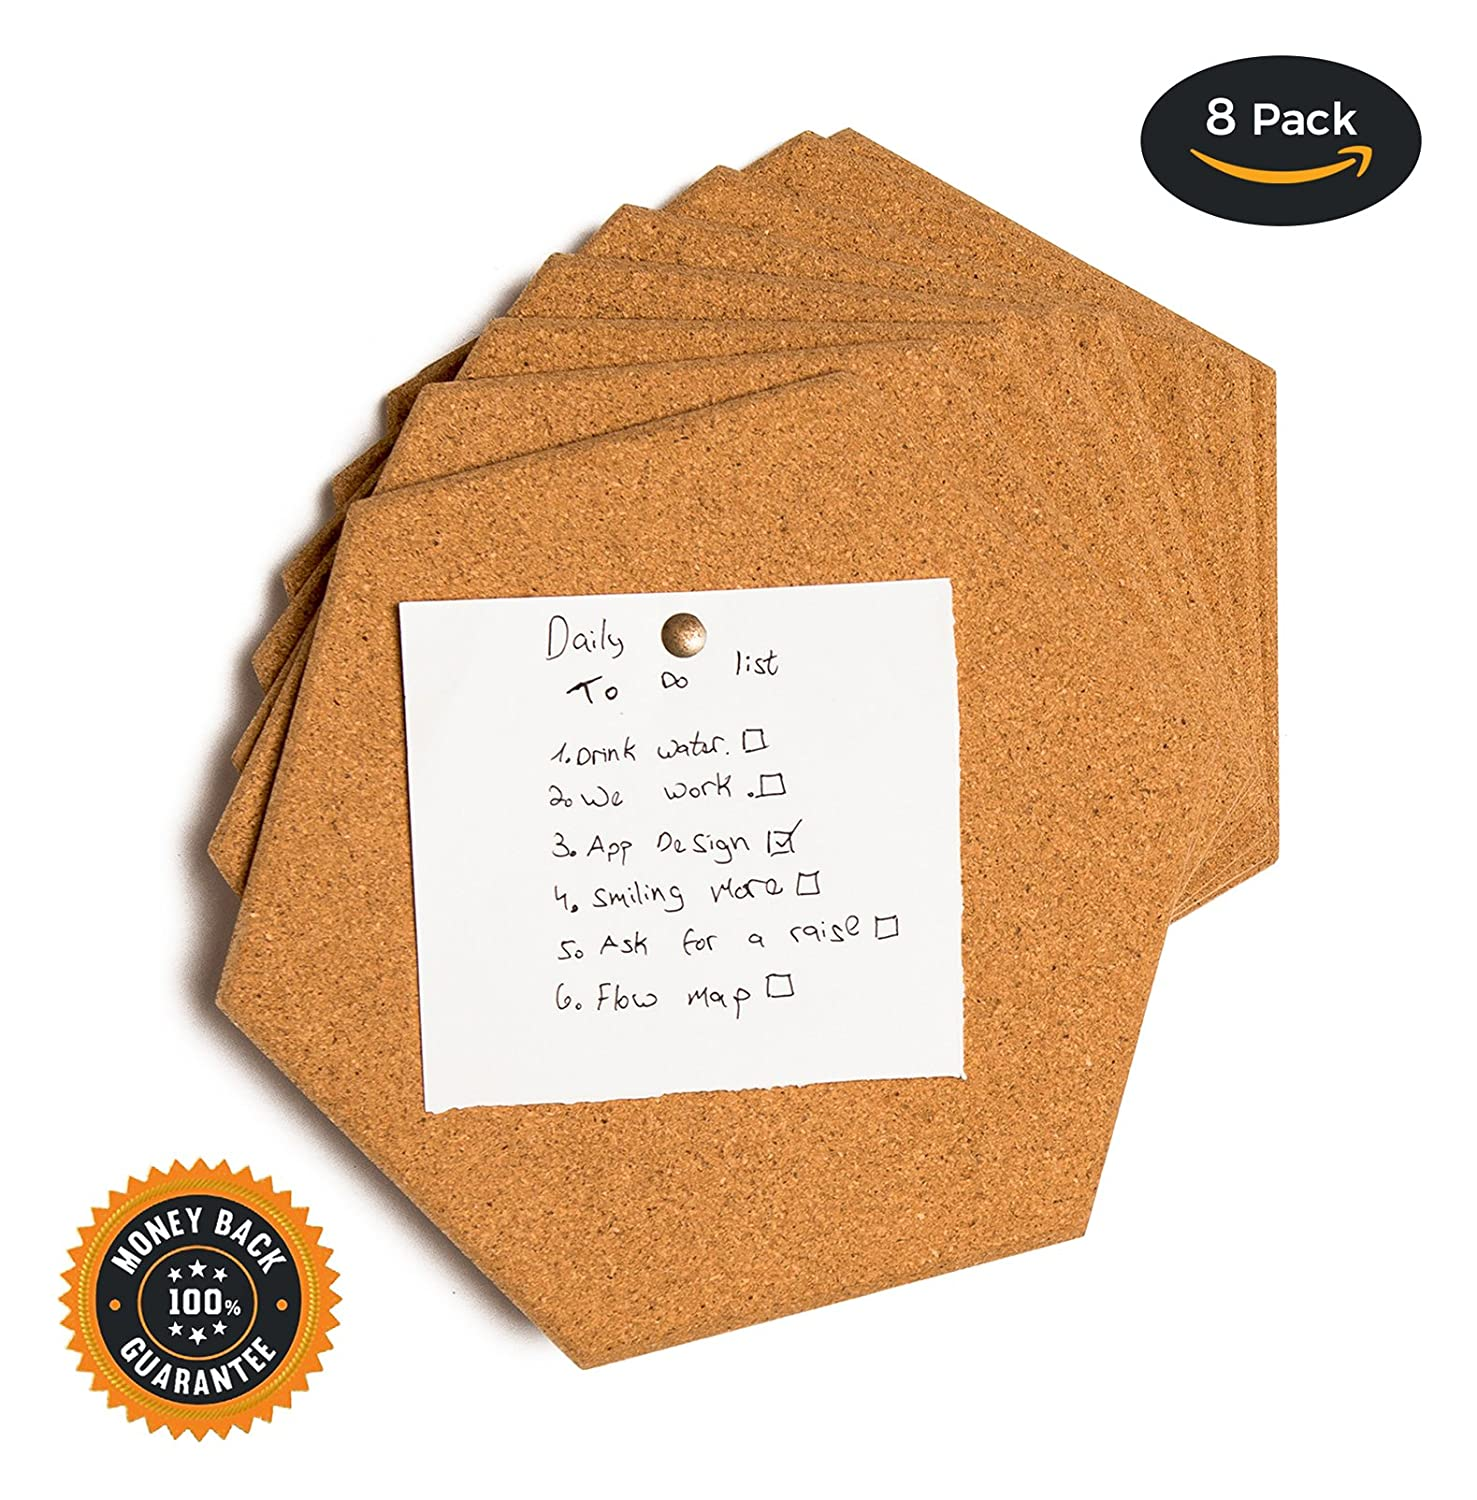 Hexagon Cork Tiles - Cork Board, Pin Board, Bulletin Board, 8 Pack Including M3 Double Sided Adhesive and 12 Push pins craft your space